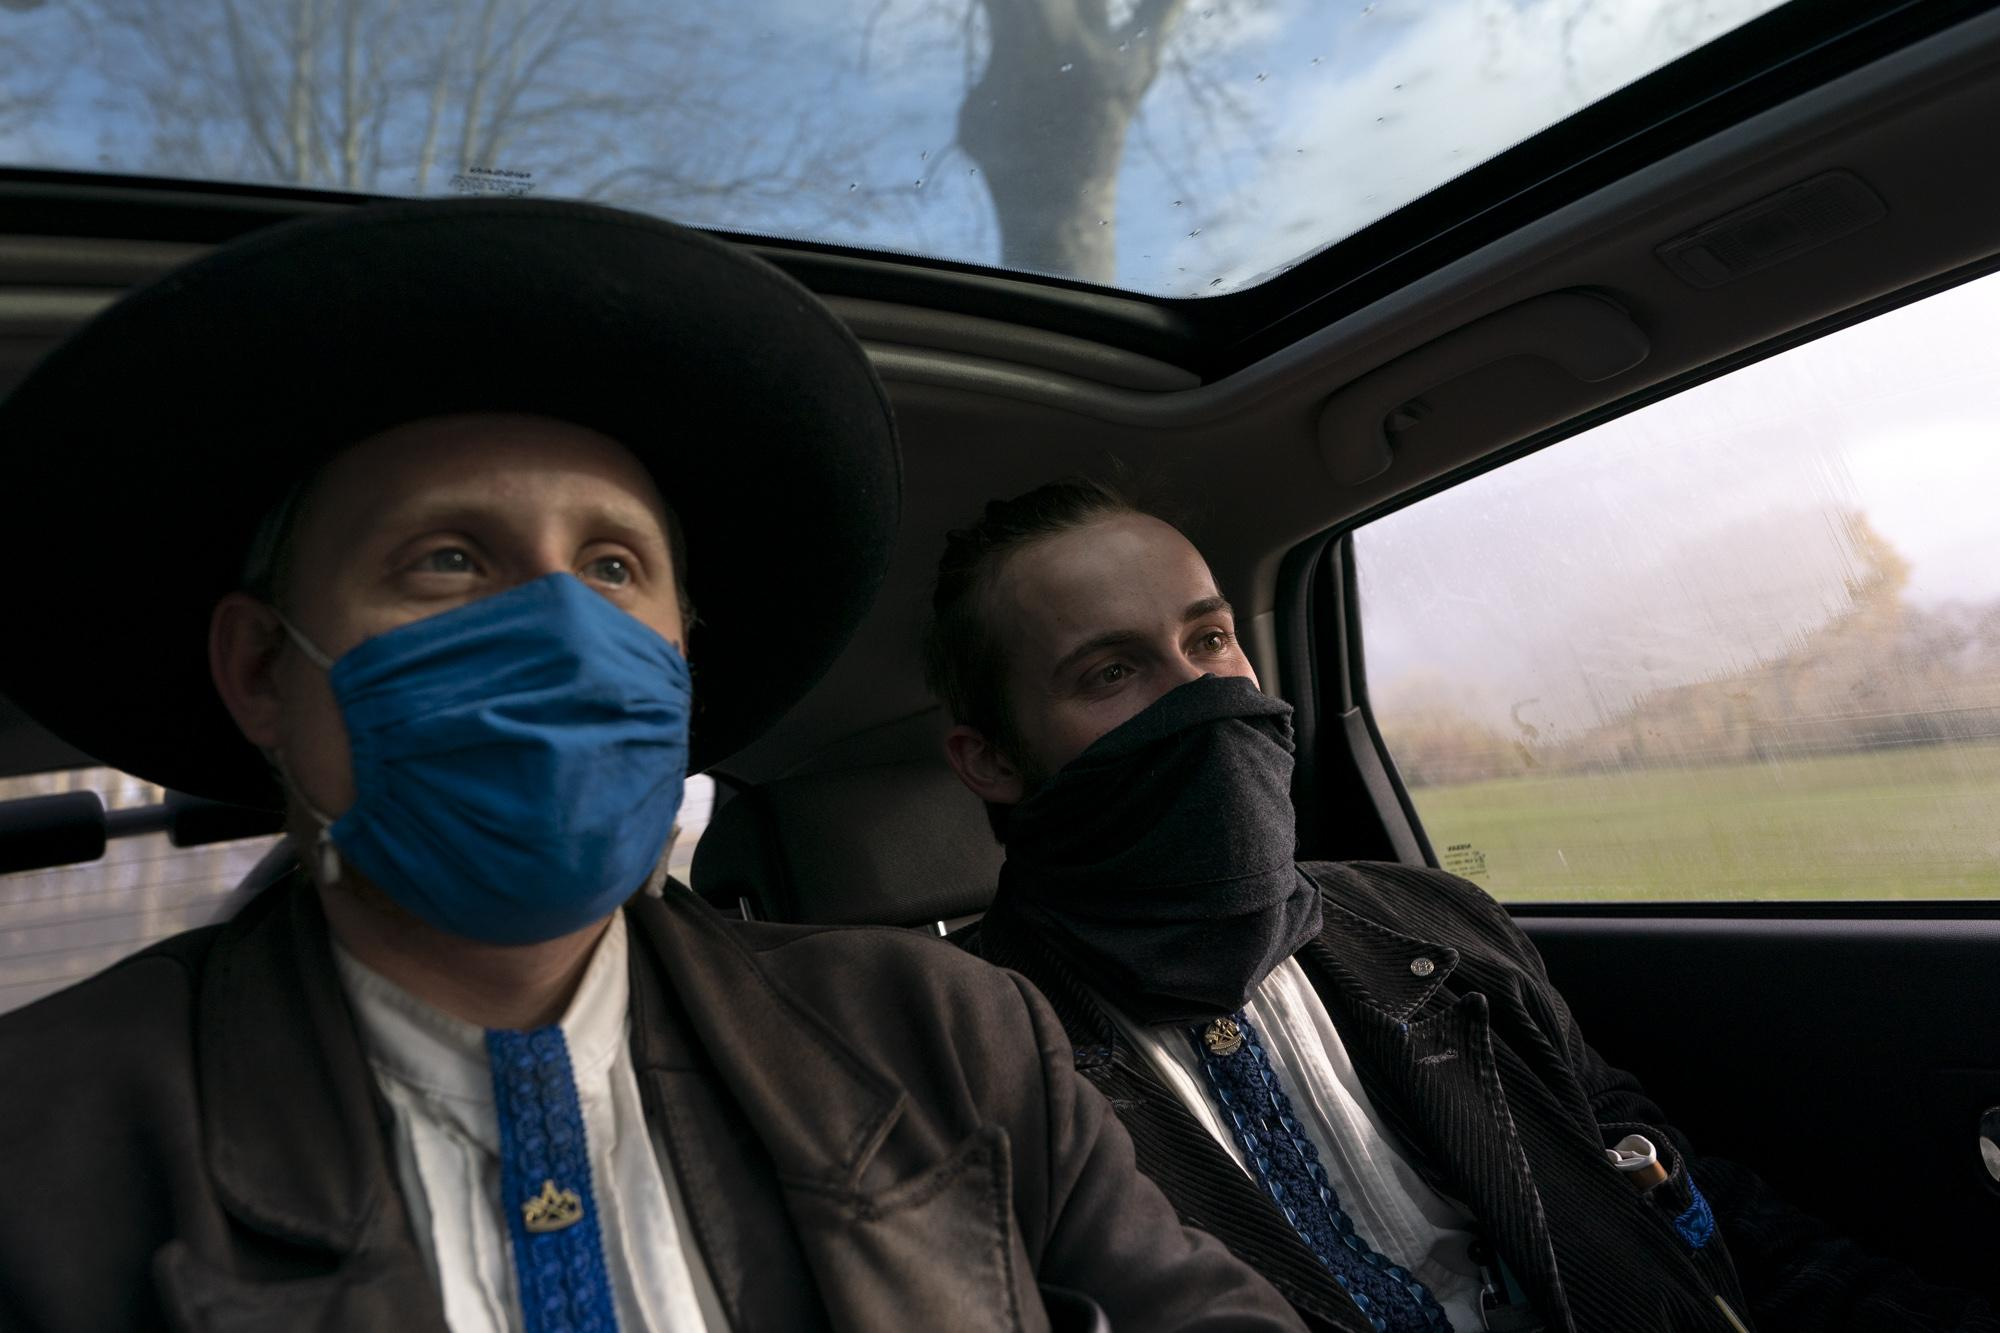 Ben (L) and Matthias sit in the backseat of Stéphane's car, as outside the rain starts again, near Gaillac, France, on December 12, 2020. Stéphane, a cook for star restaurants, saw the two young men walking along the road on his way to Gaillac, and later told them that as he saw them again while driving back home, he had to stop to learn about their costumes. Discovering about this tradition made him visibly happy and touched him profoundly during the short time they shared in the car trip from Gaillac, via Lisle-sur-Tarne until Rabastens, where he drove them extra 16 km.